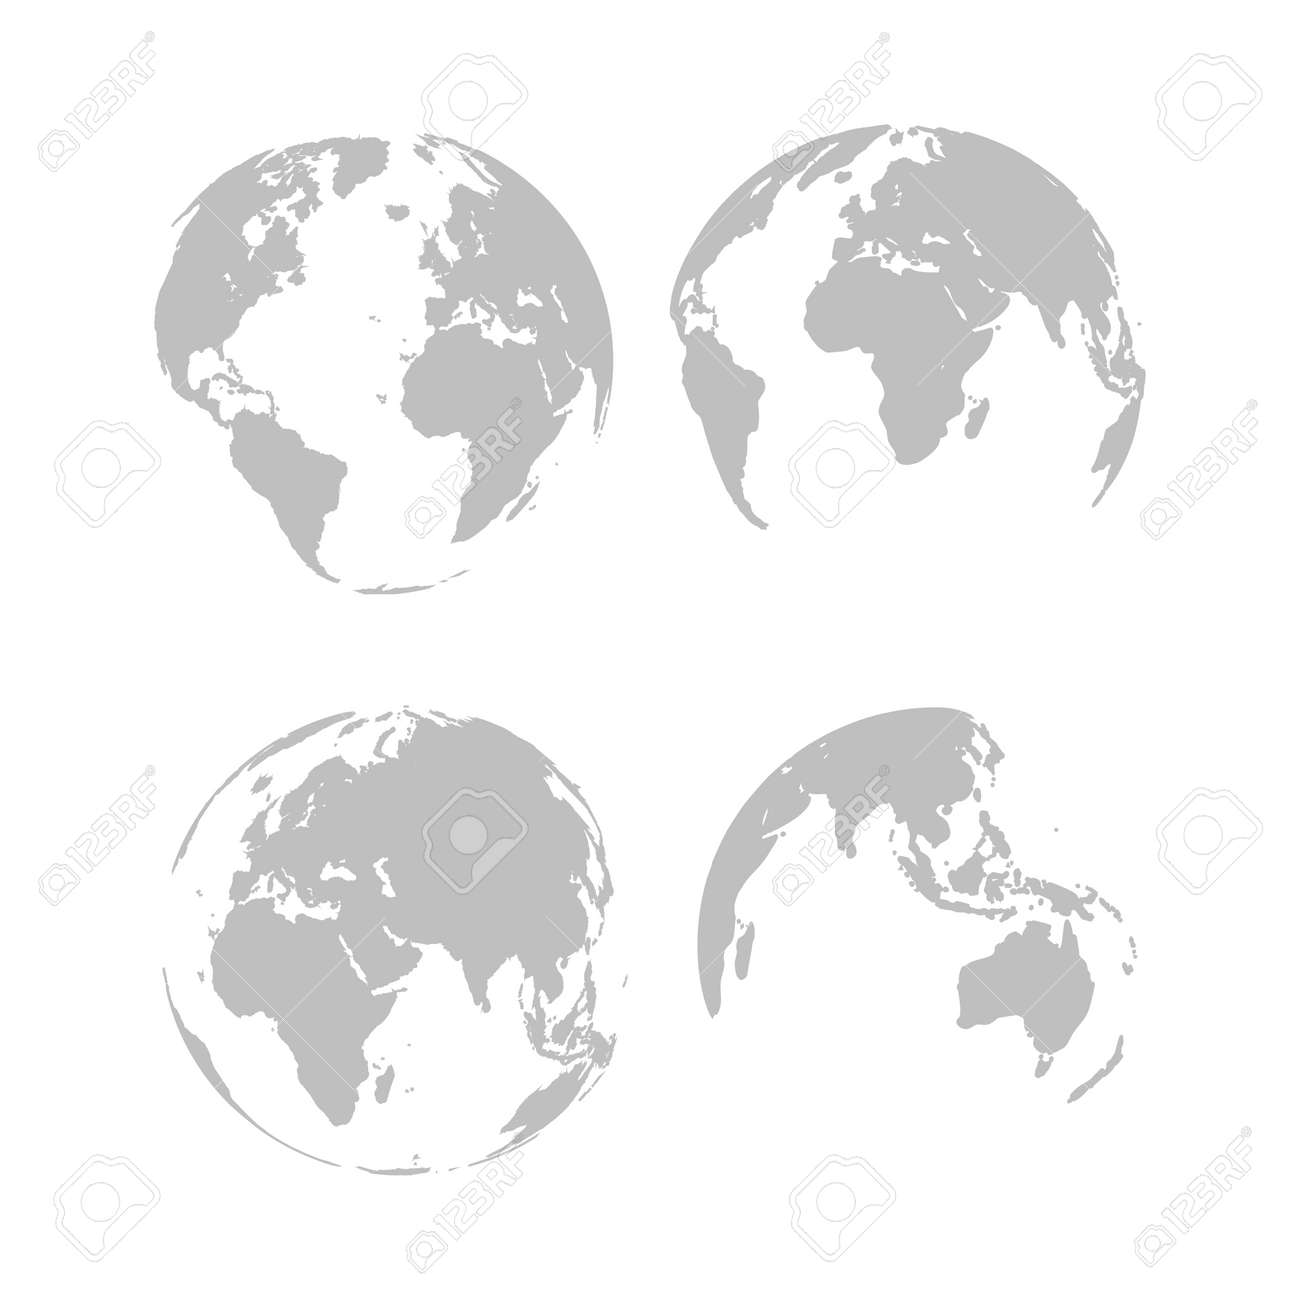 Planet Earth. Earth Day. The Earth, World Map on white background. Vector illustration. EPS 10 - 167347481